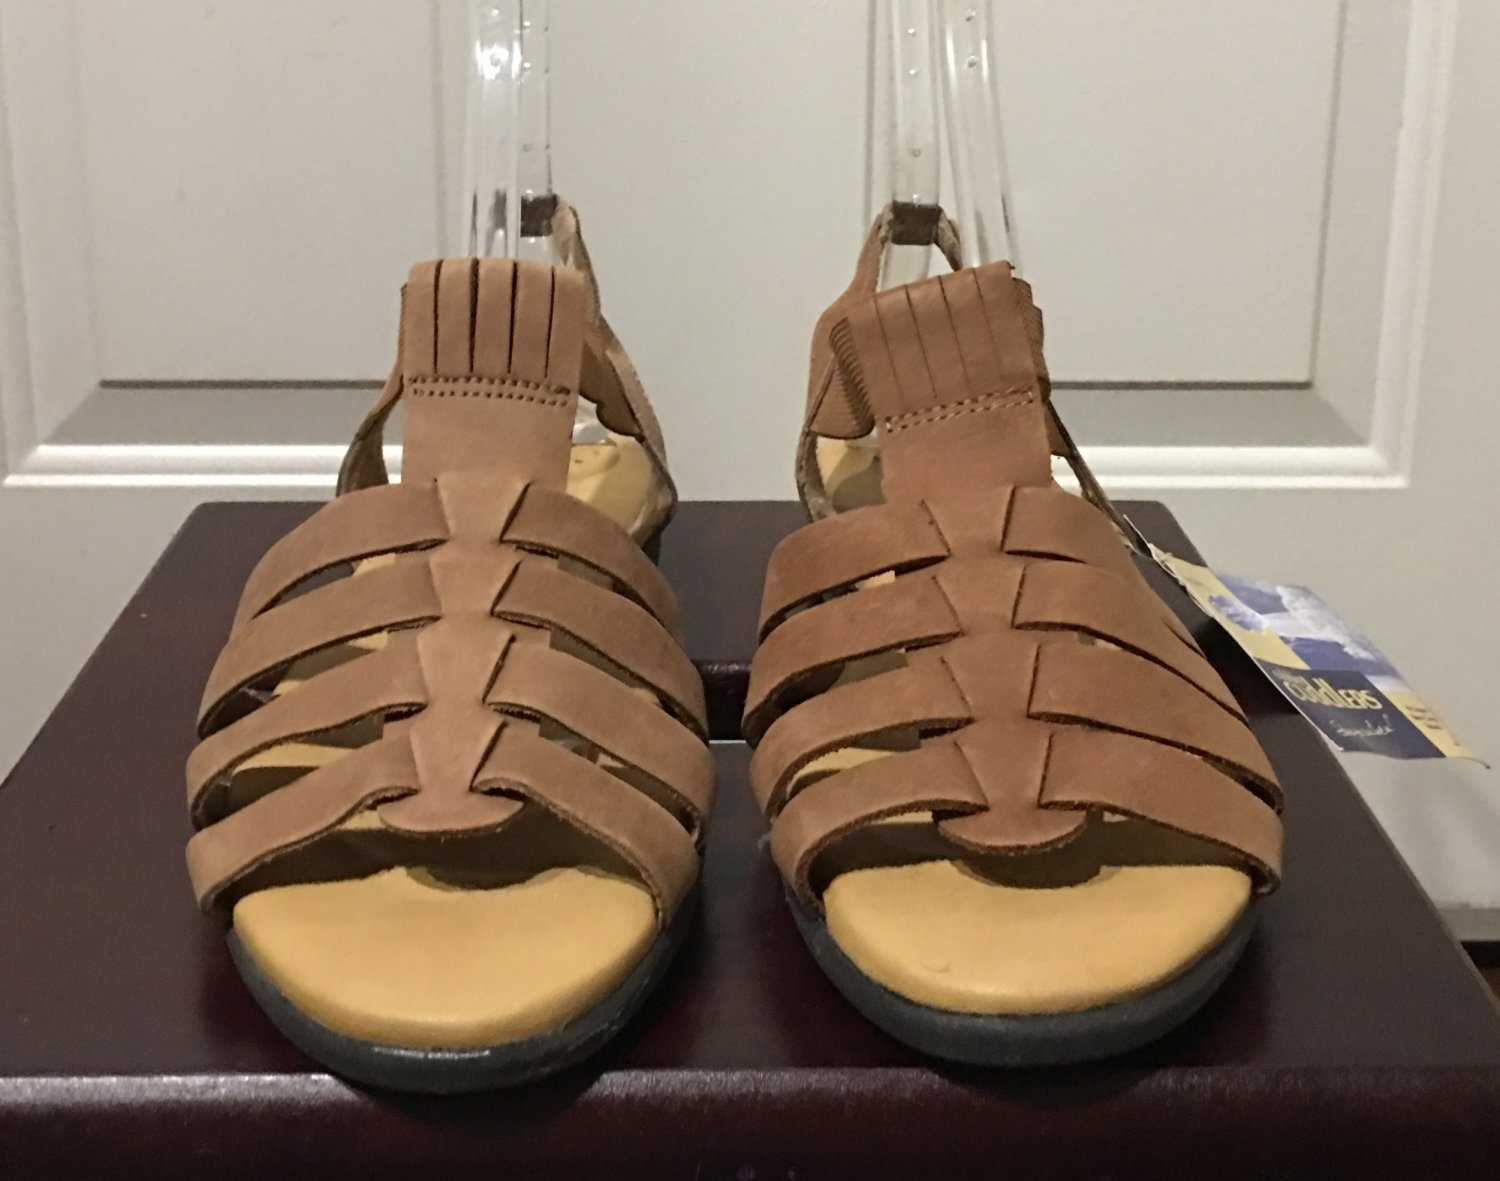 NWT Cobbie Cuddlers SANDALS Ladies Comfort Shoes SIZE 11 Camel Tan Leather